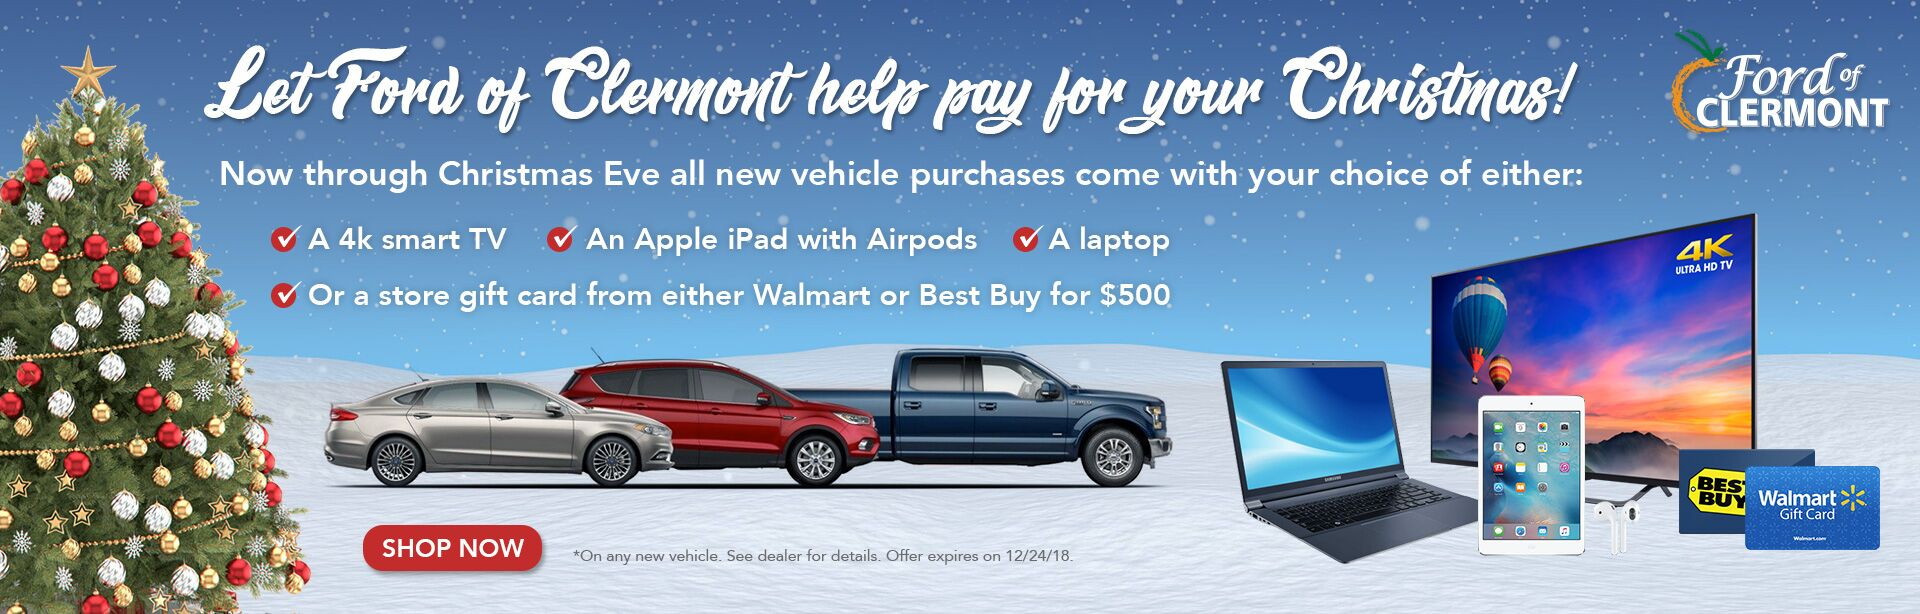 2018 Holiday Sales Event